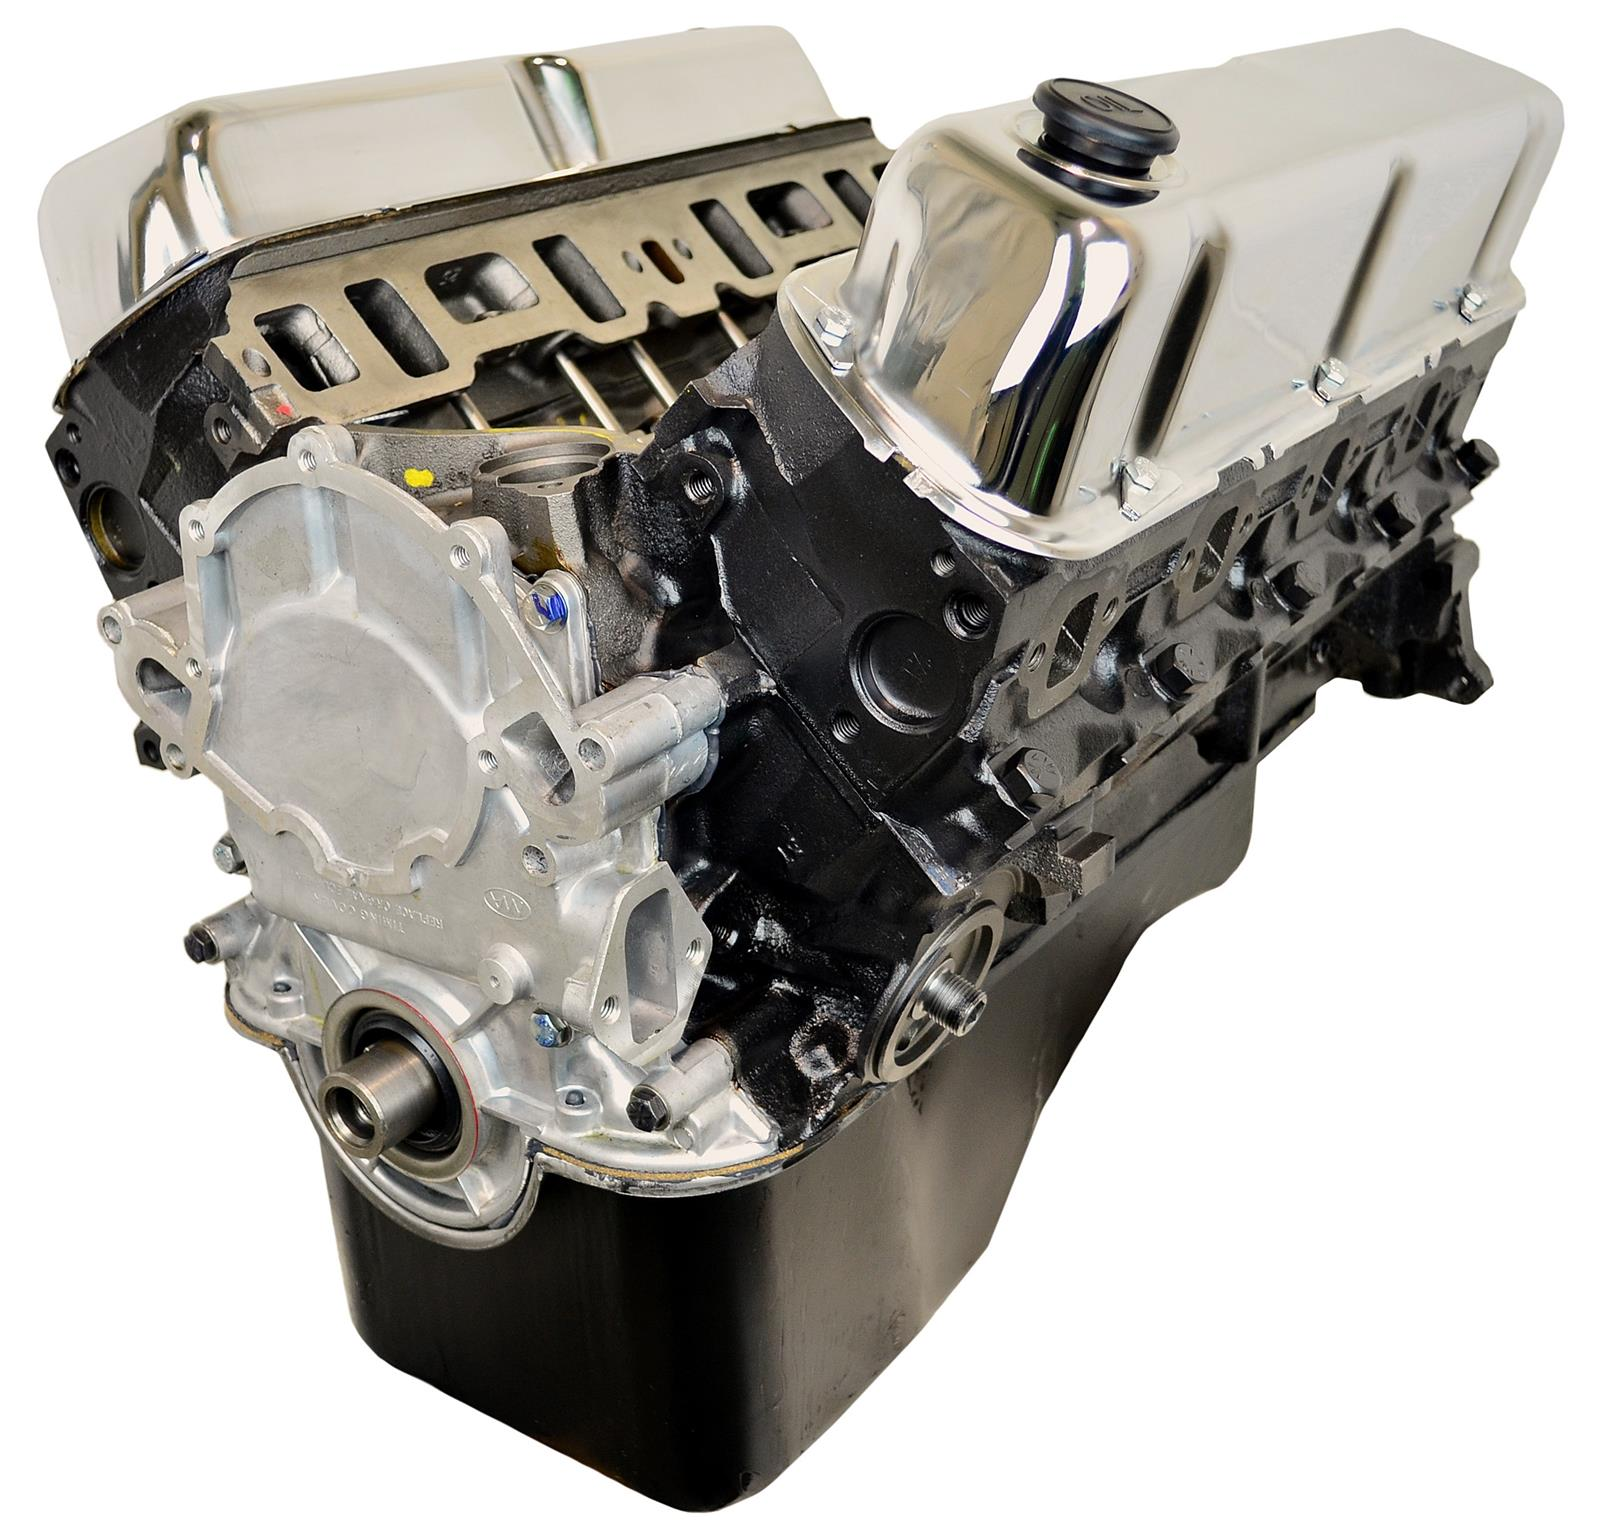 hight resolution of atk high performance ford 351w 300 hp stage 1 long block crate engines hp09 free shipping on orders over 99 at summit racing